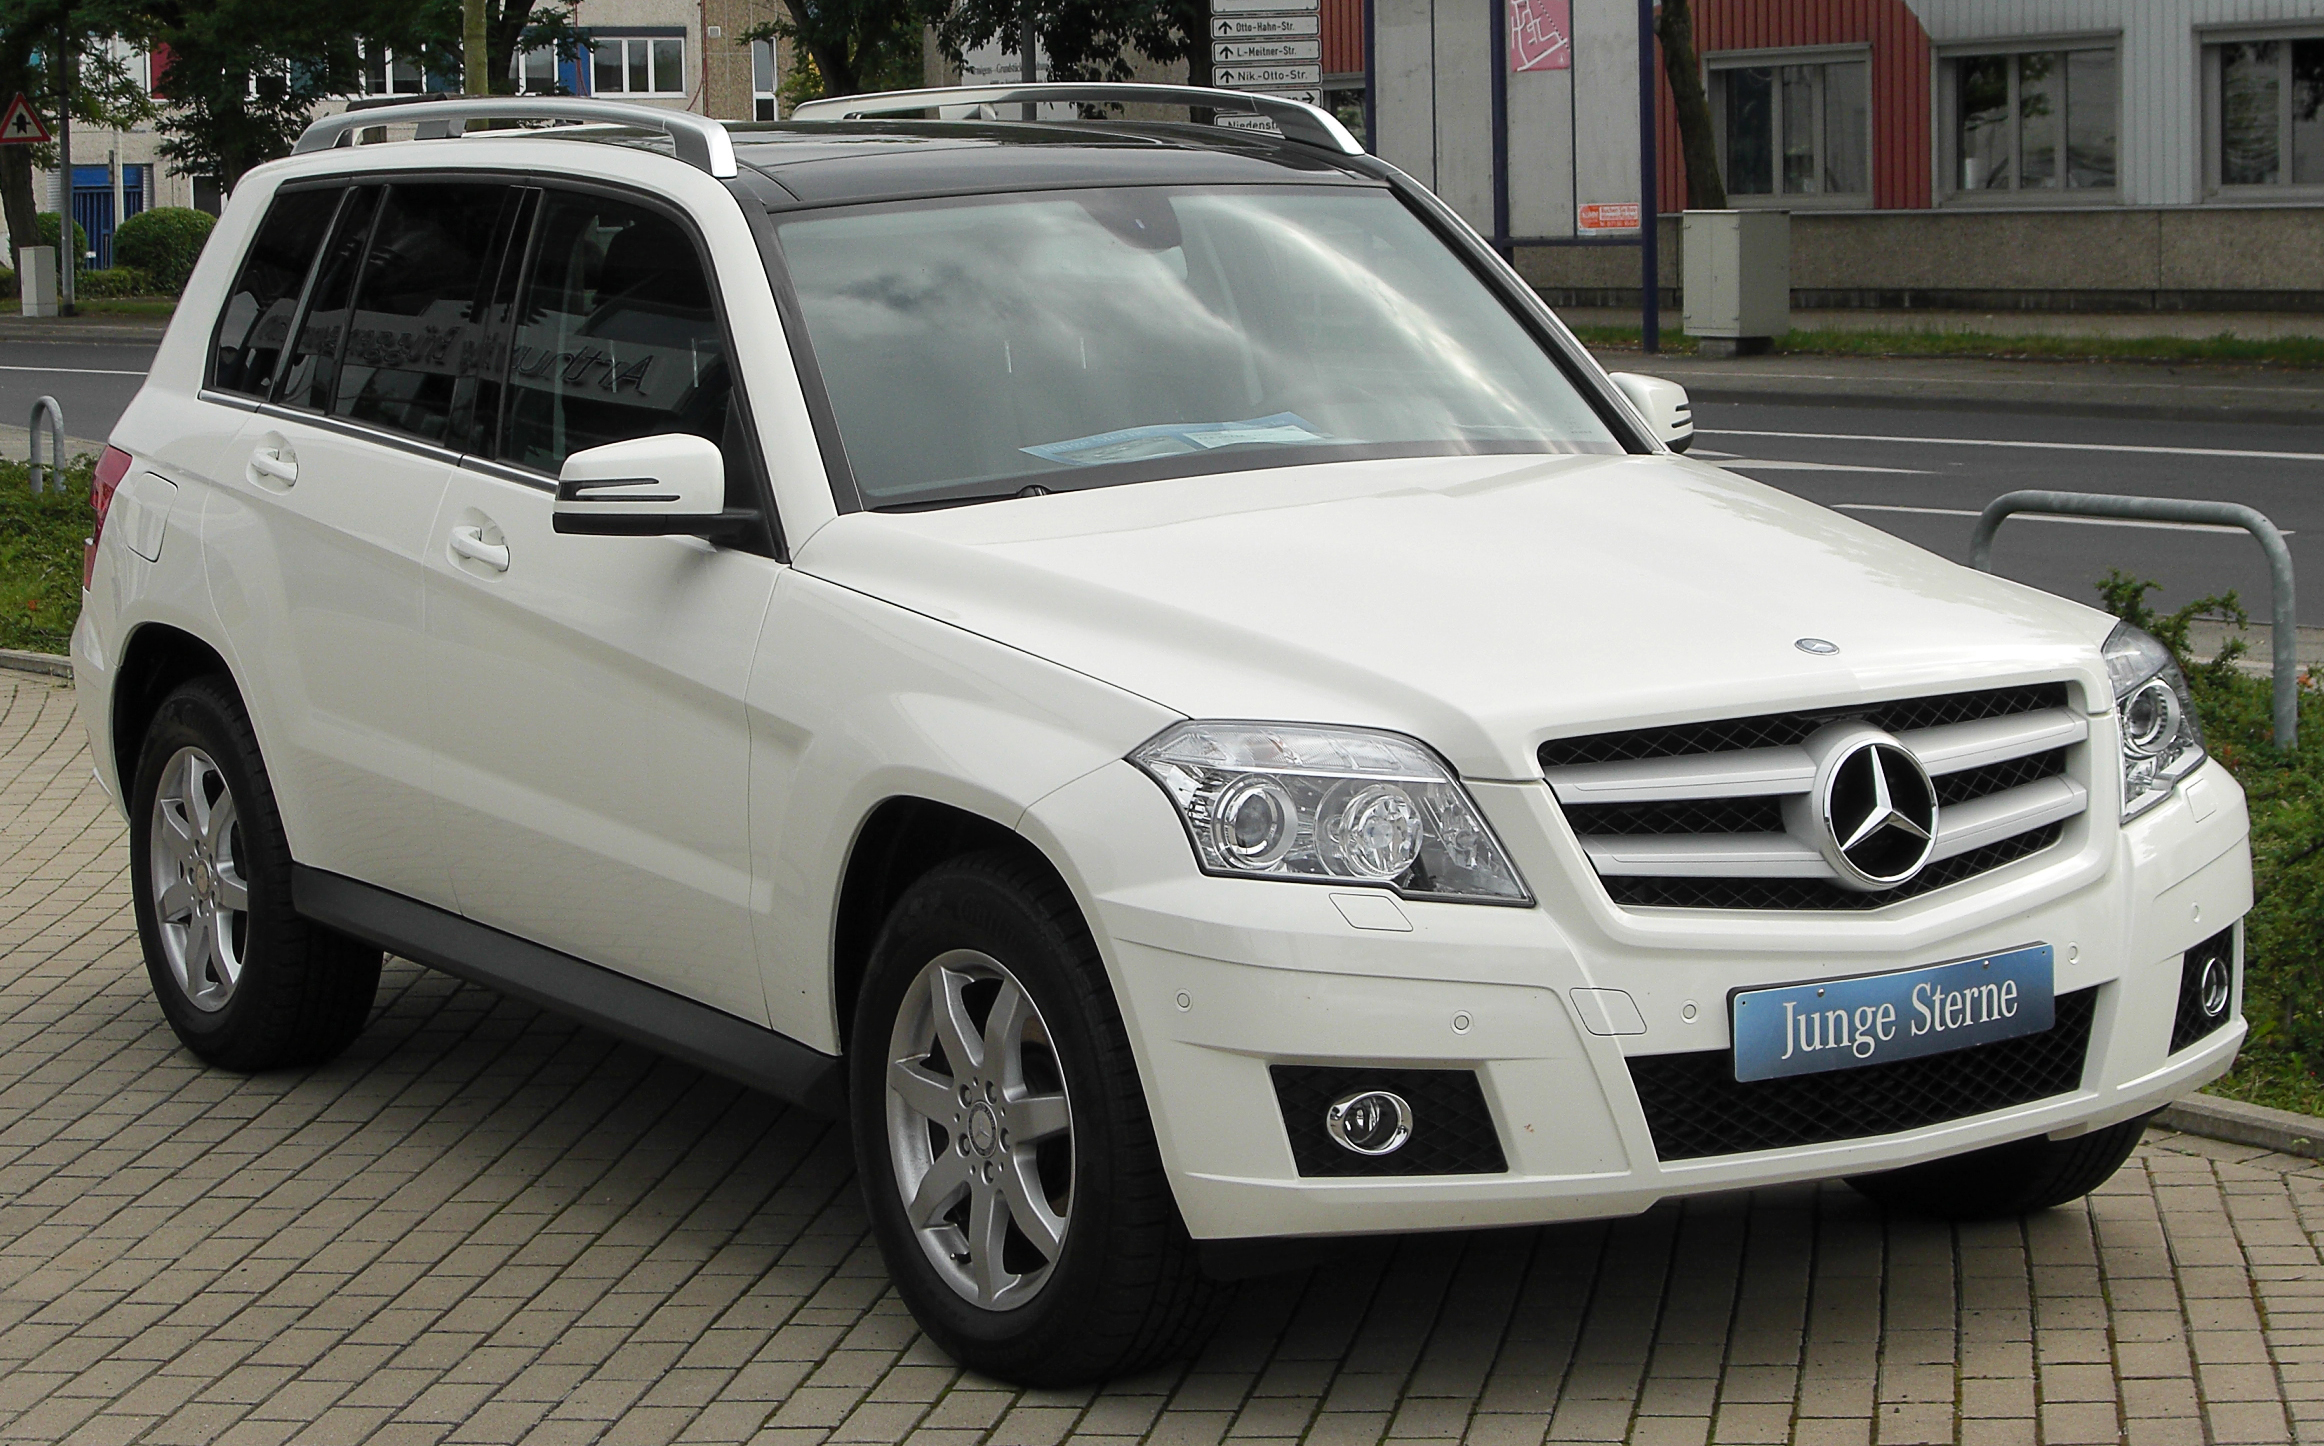 2015 glk 350 reviews 2015 best auto reviews for Mercedes benz glk 350 review